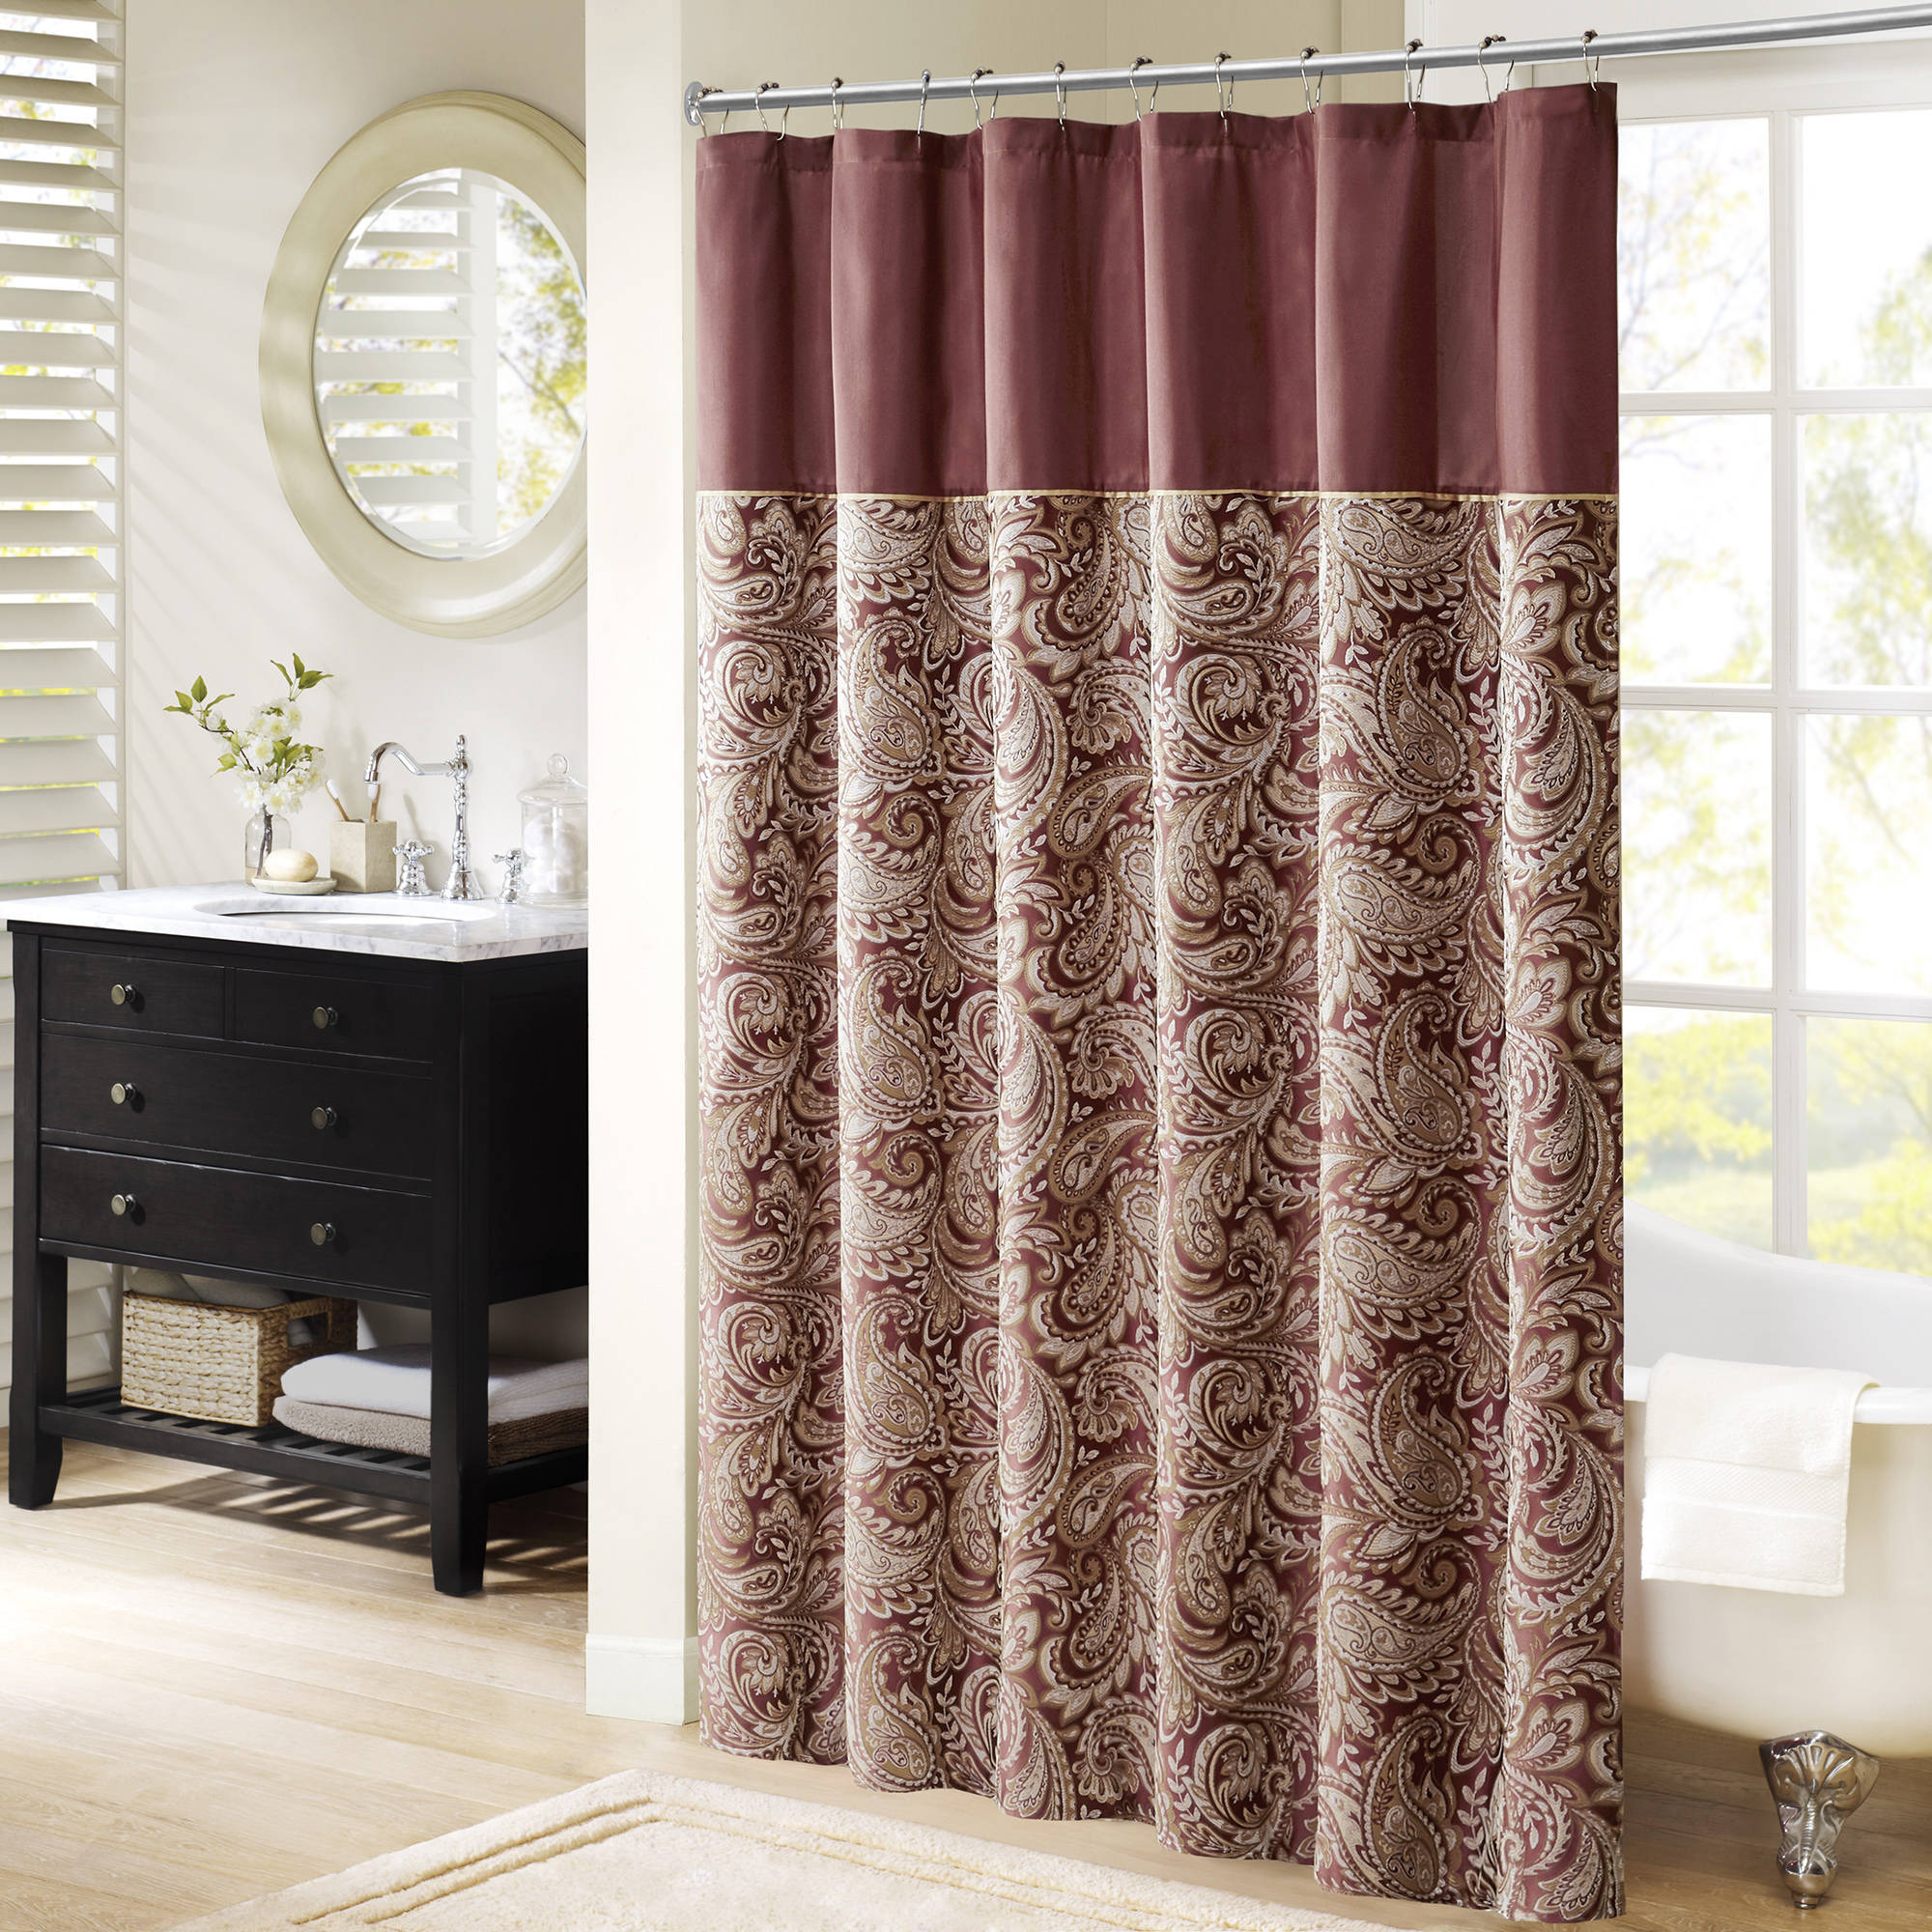 shower curtains 85 FNKBASJ